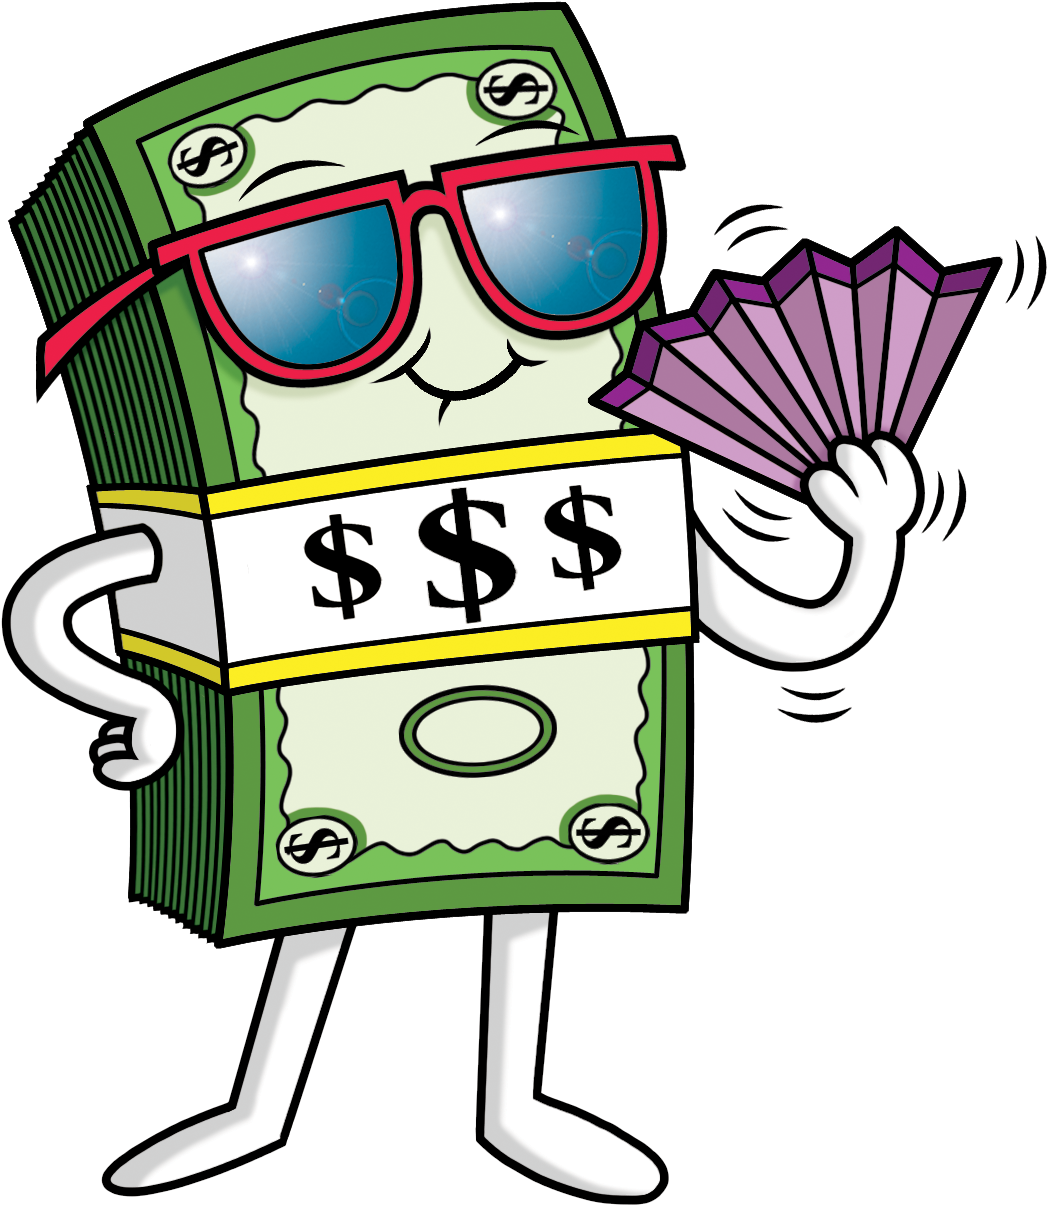 Whimsical Dollar Illustration Cartoon Ecommerce Glasses PNG Image